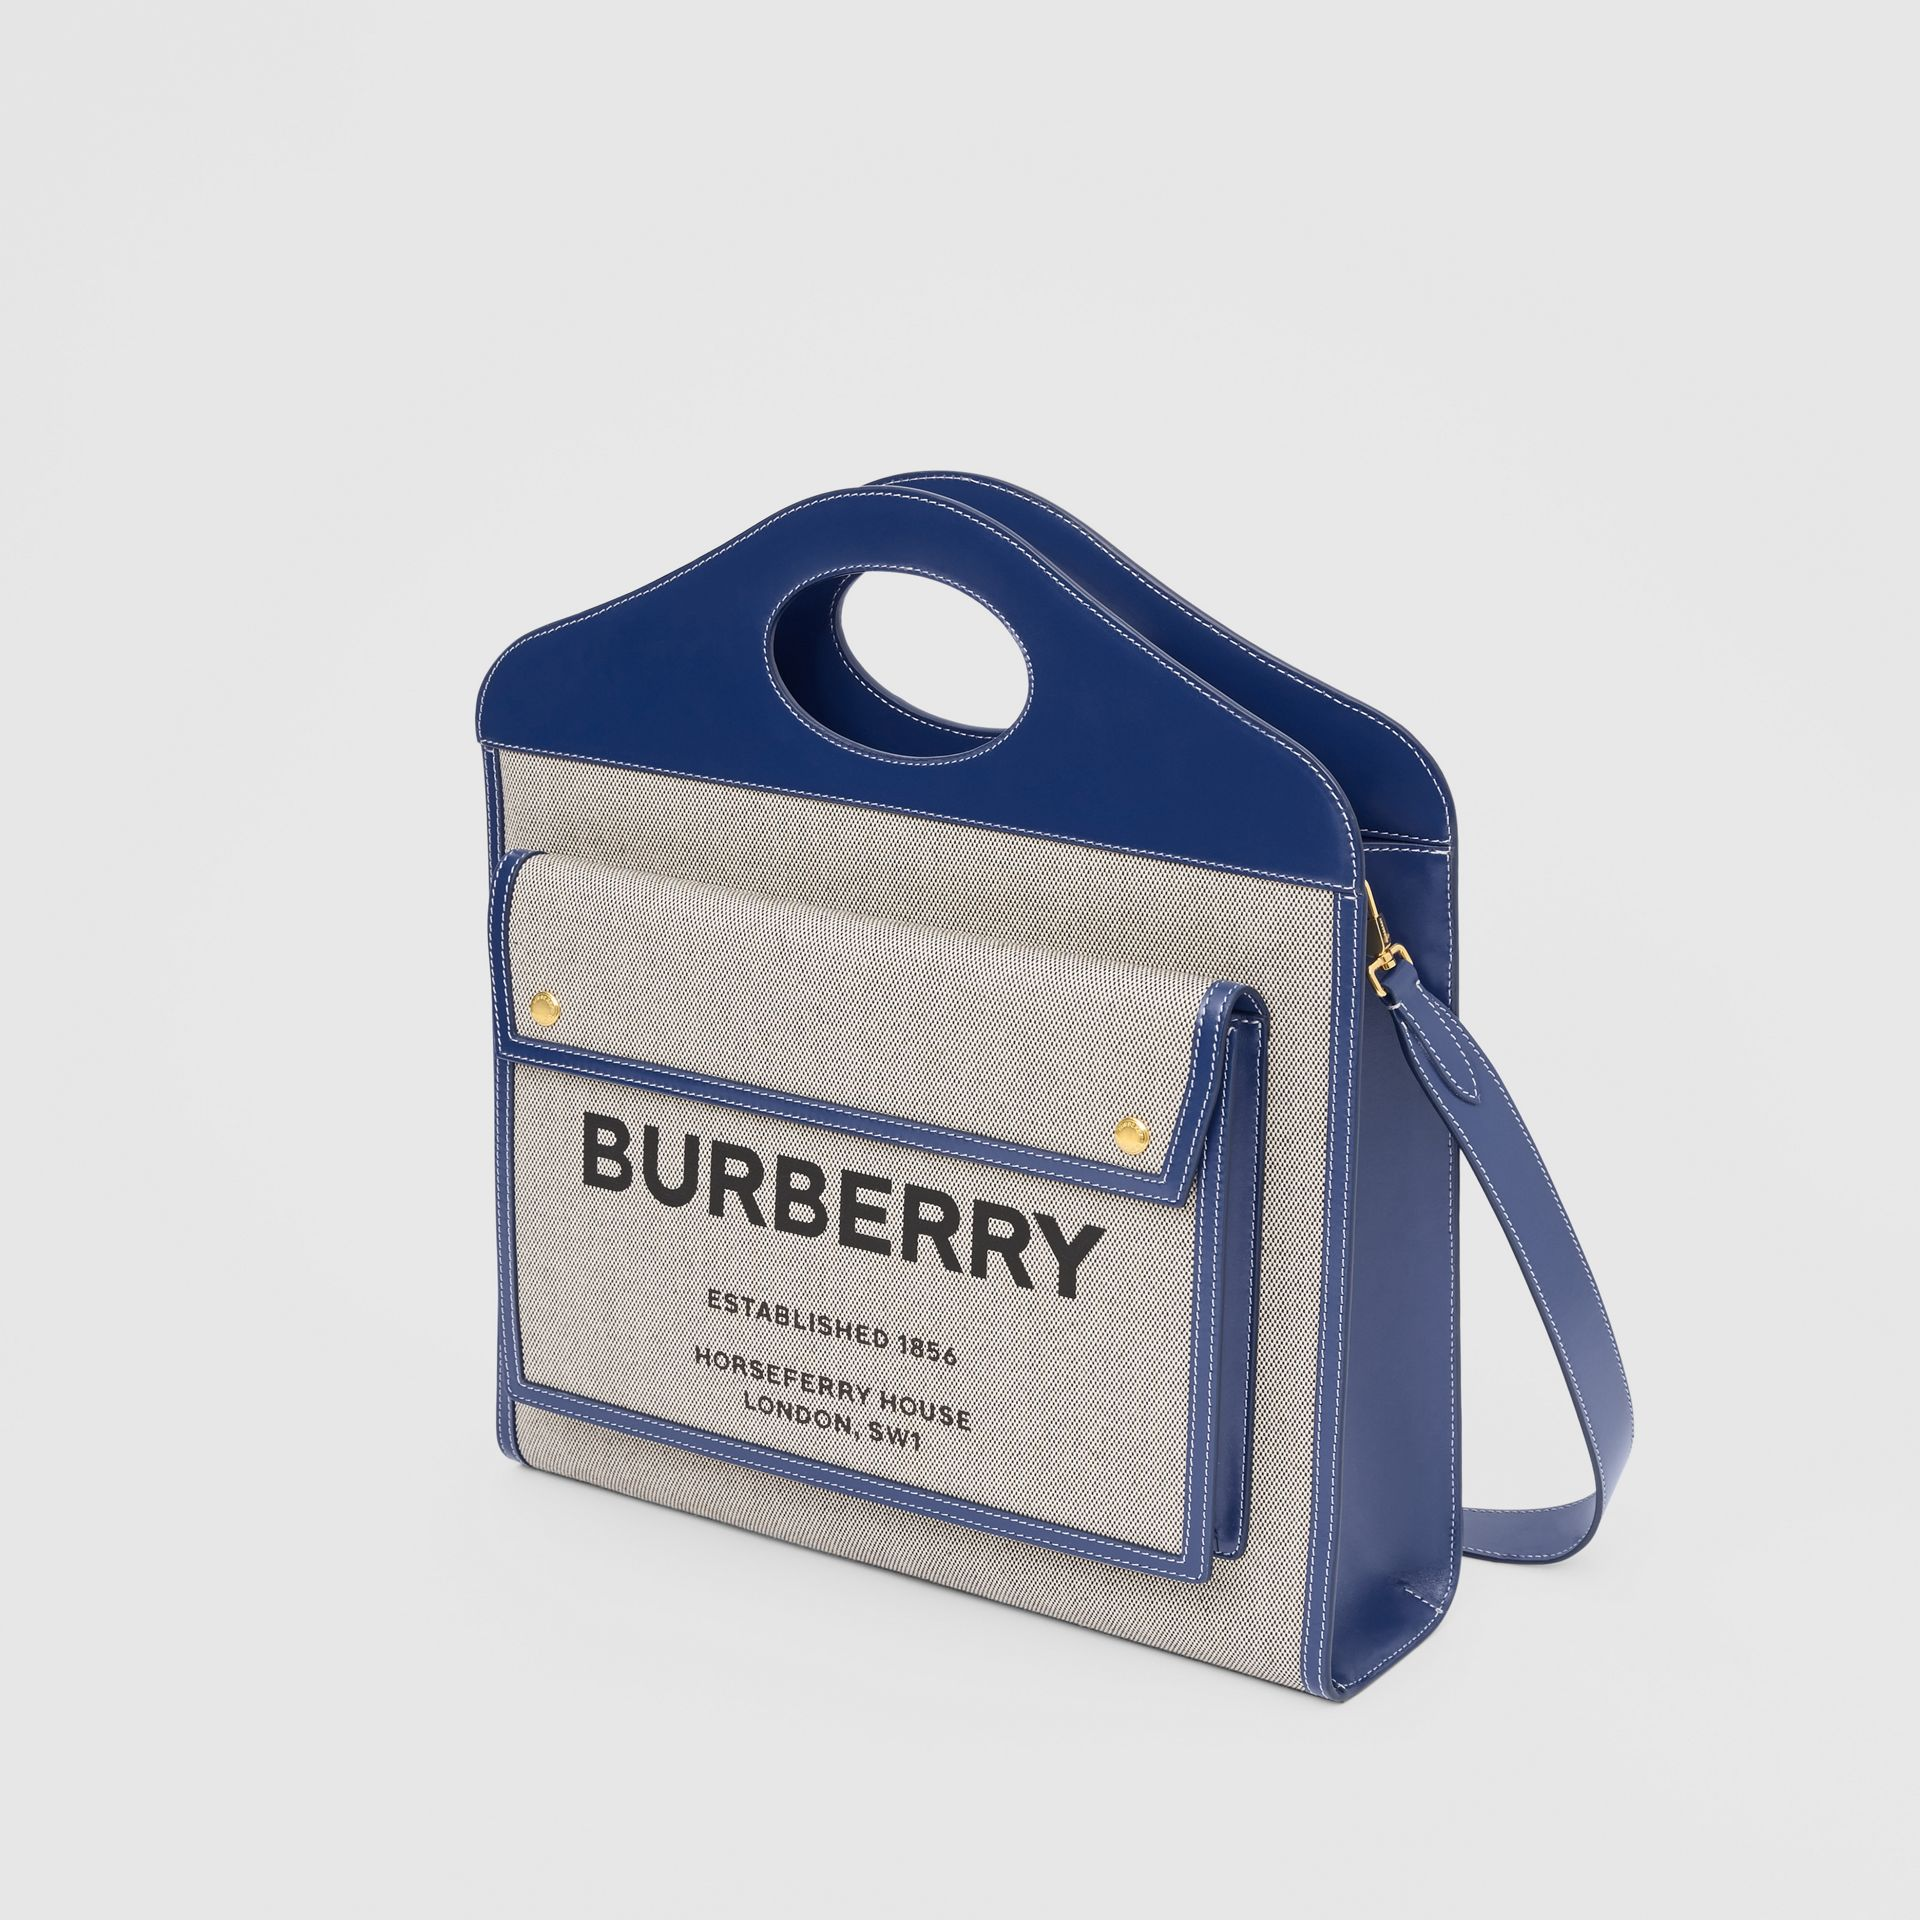 Medium Two-tone Canvas and Leather Pocket Bag in Ink Navy - Women | Burberry - gallery image 3